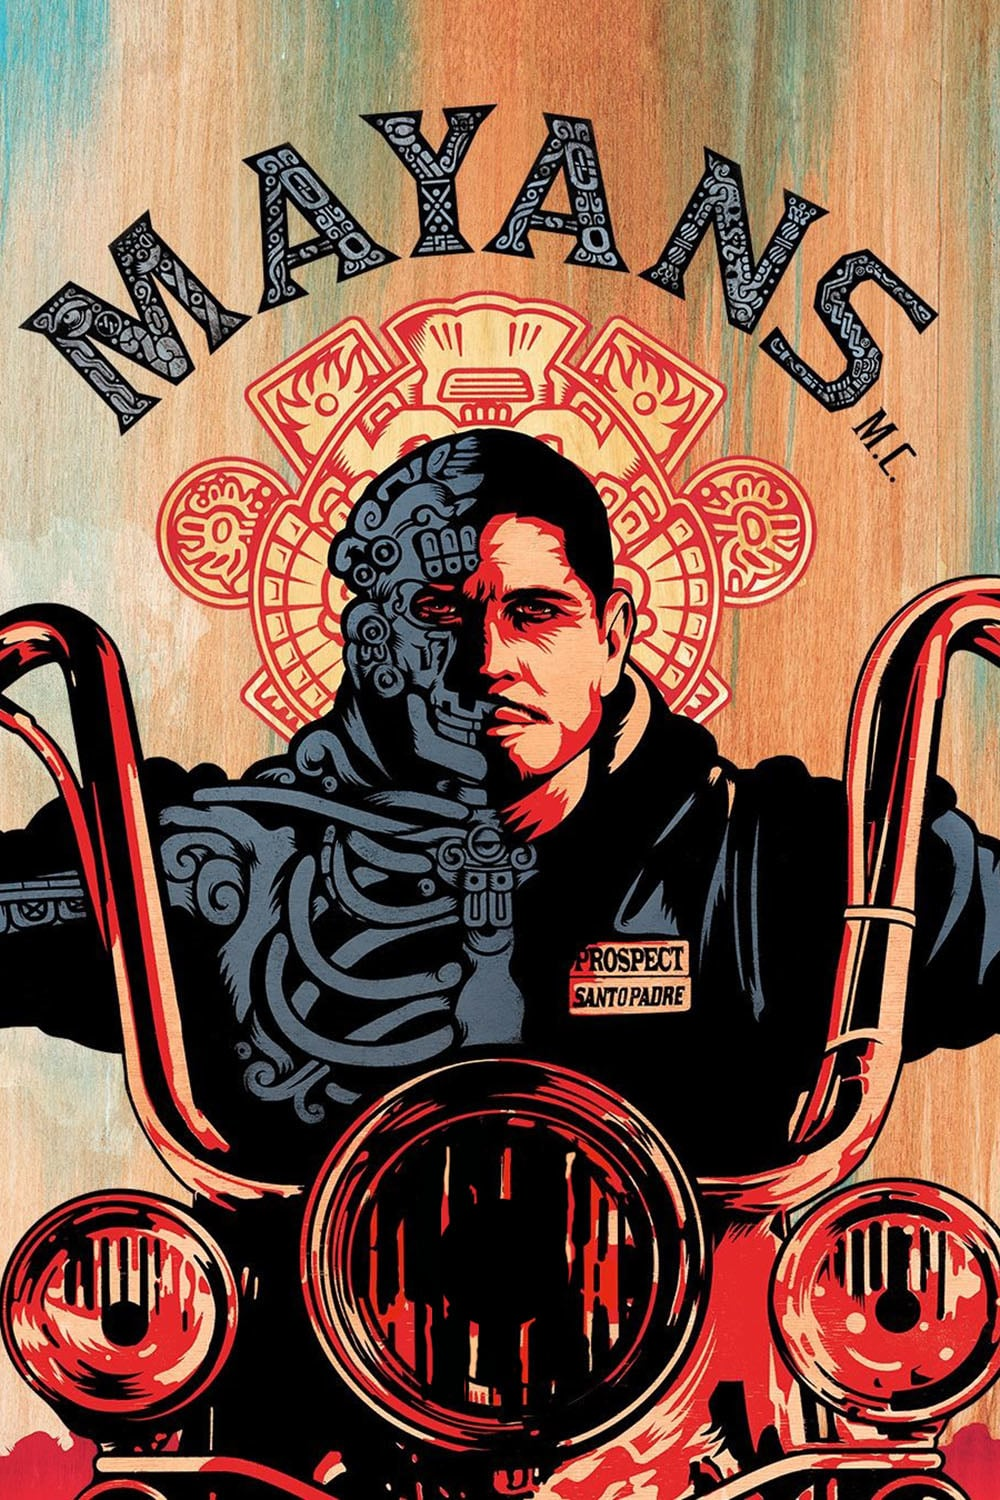 Mayans Mc Saison 2 Streaming : mayans, saison, streaming, Mayans, Saison, Streaming